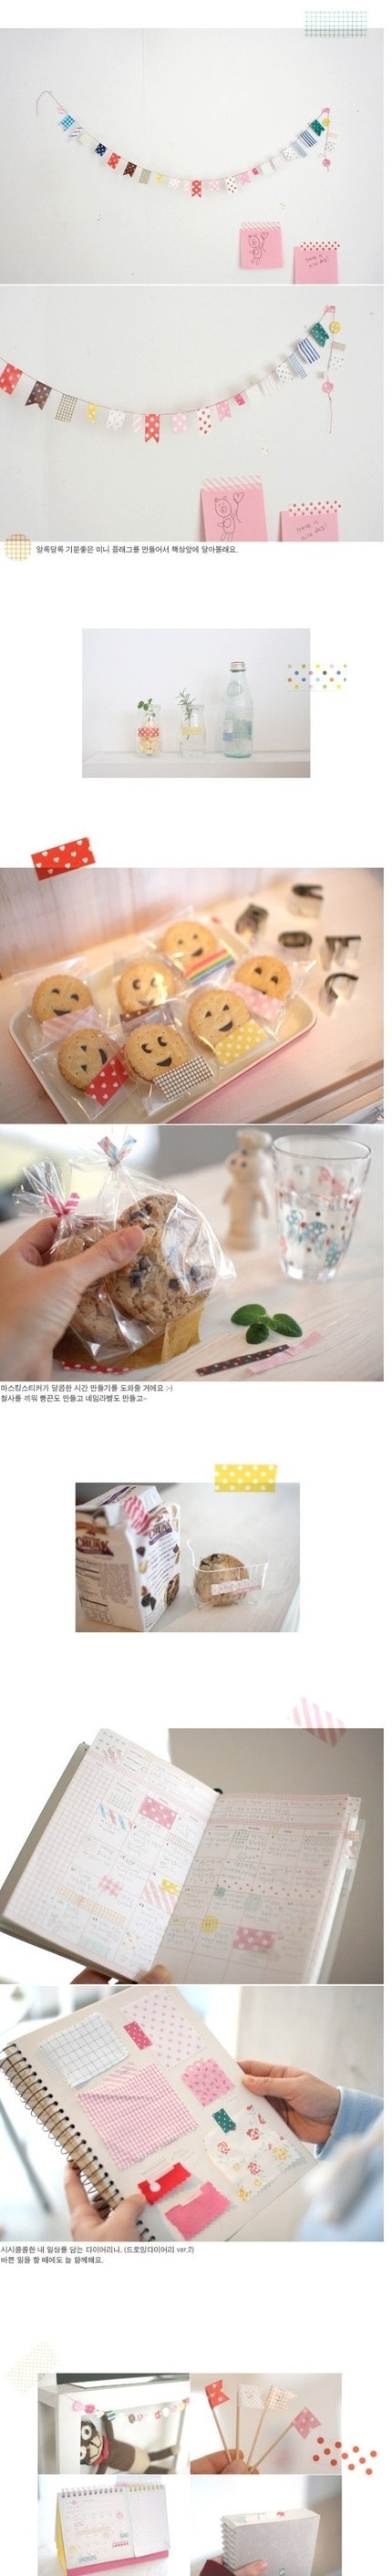 japanese masking tape: cute ideas! Could be adapted to do with patterned paper or fabrips.